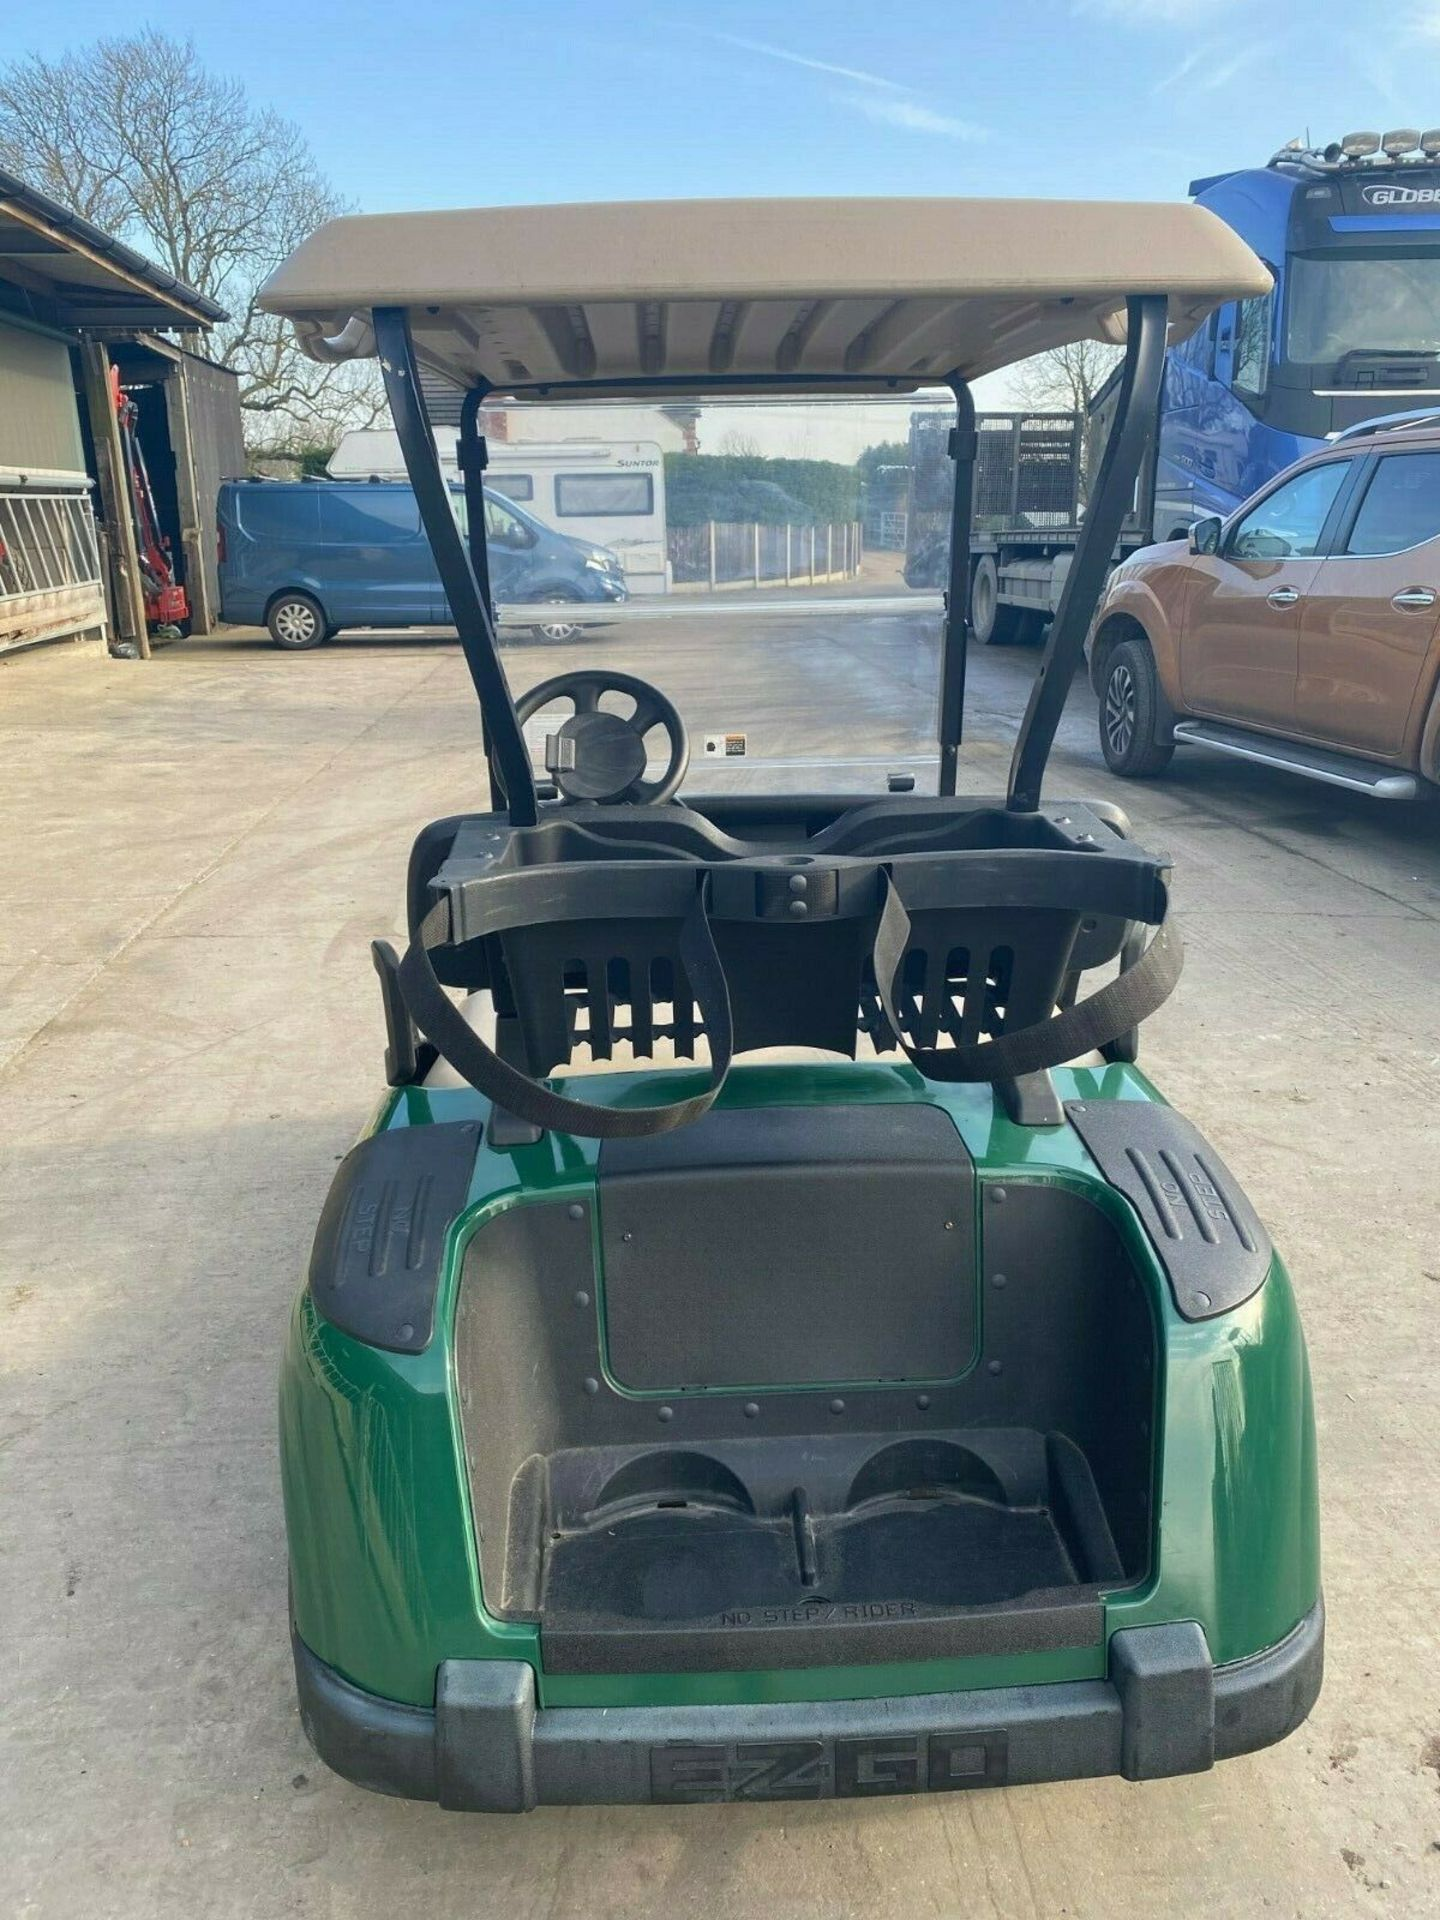 Lot 153 - EZGO GOLF BUGGY, ELECTRIC, YEAR 2014, COMPLETE WITH ONBOARD CHARGER, IMMACULATE CONDITION *PLUS VAT*